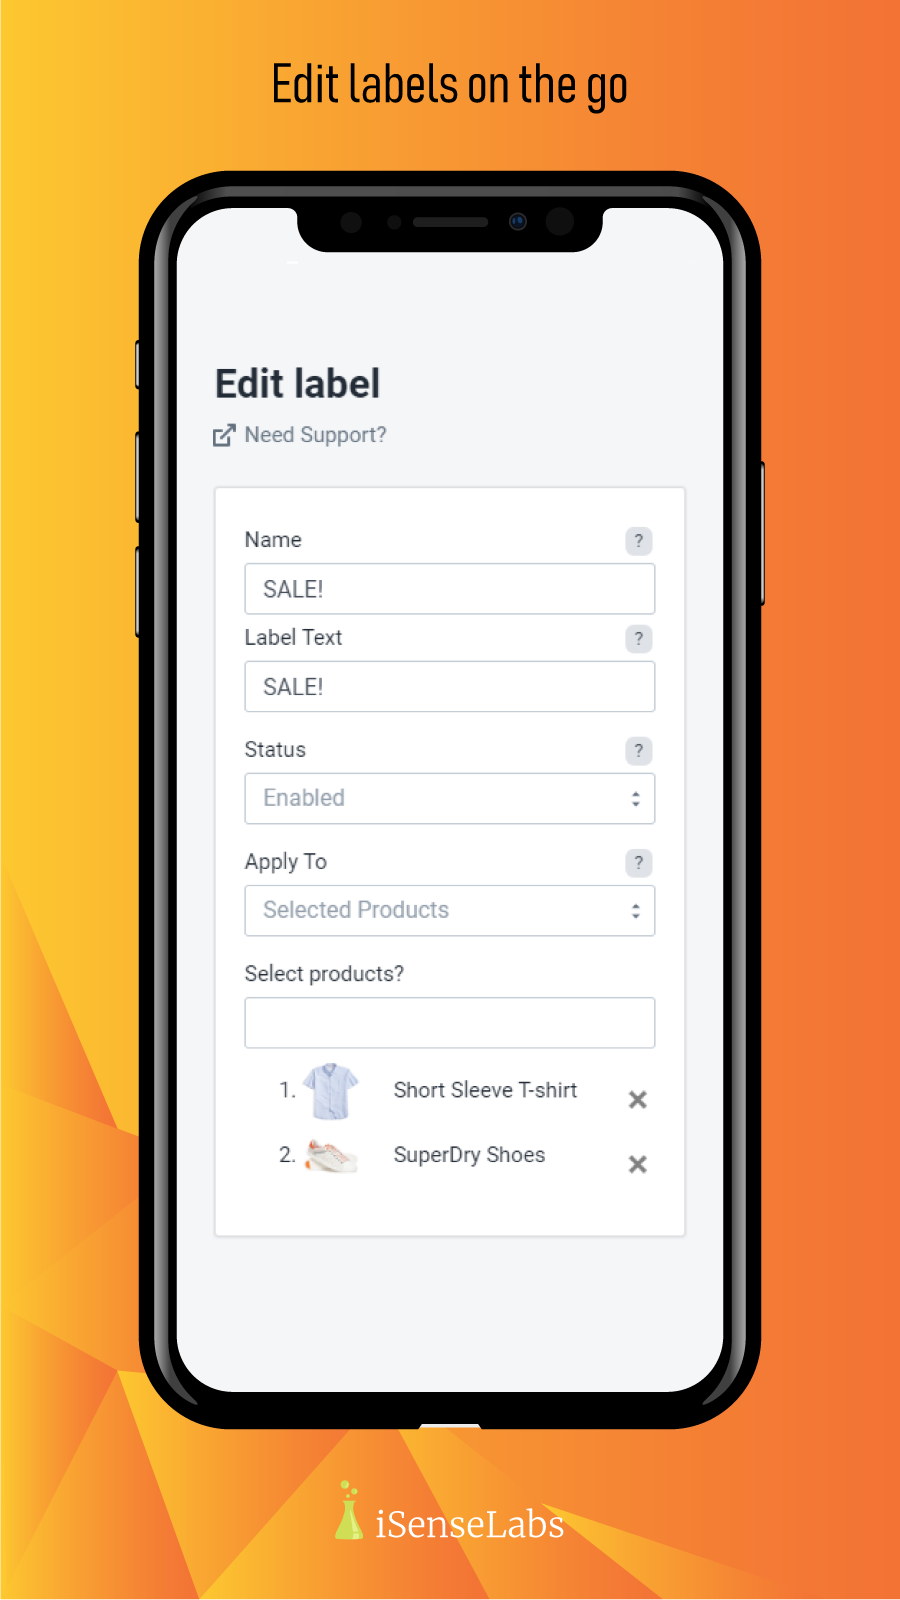 Edit labels on the go